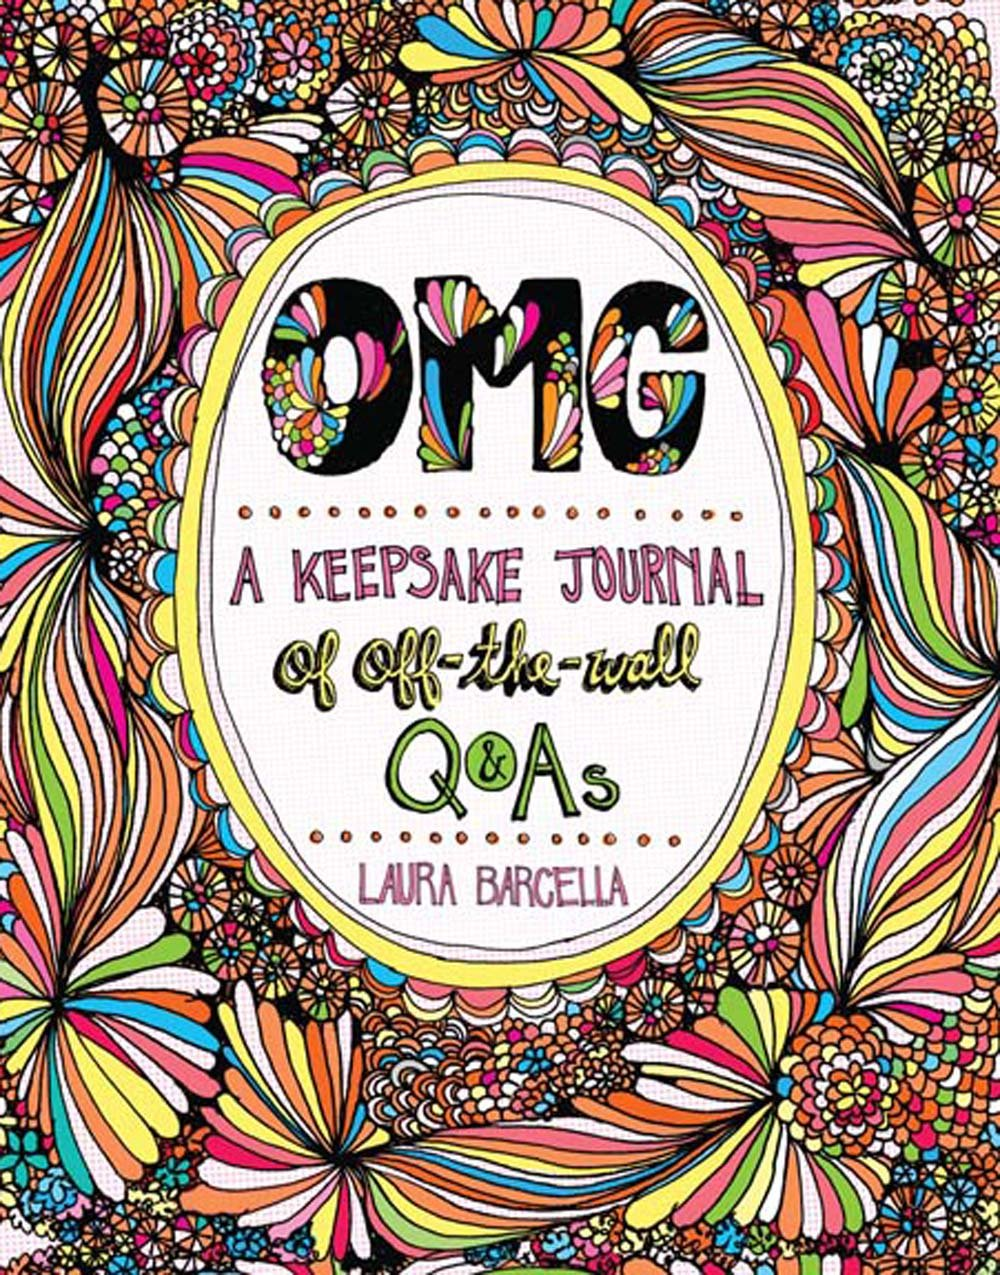 omg - A Keepsake Journal of Off-the-Wall Q&As(Sterling Children's Publishing, Jan. 2015)